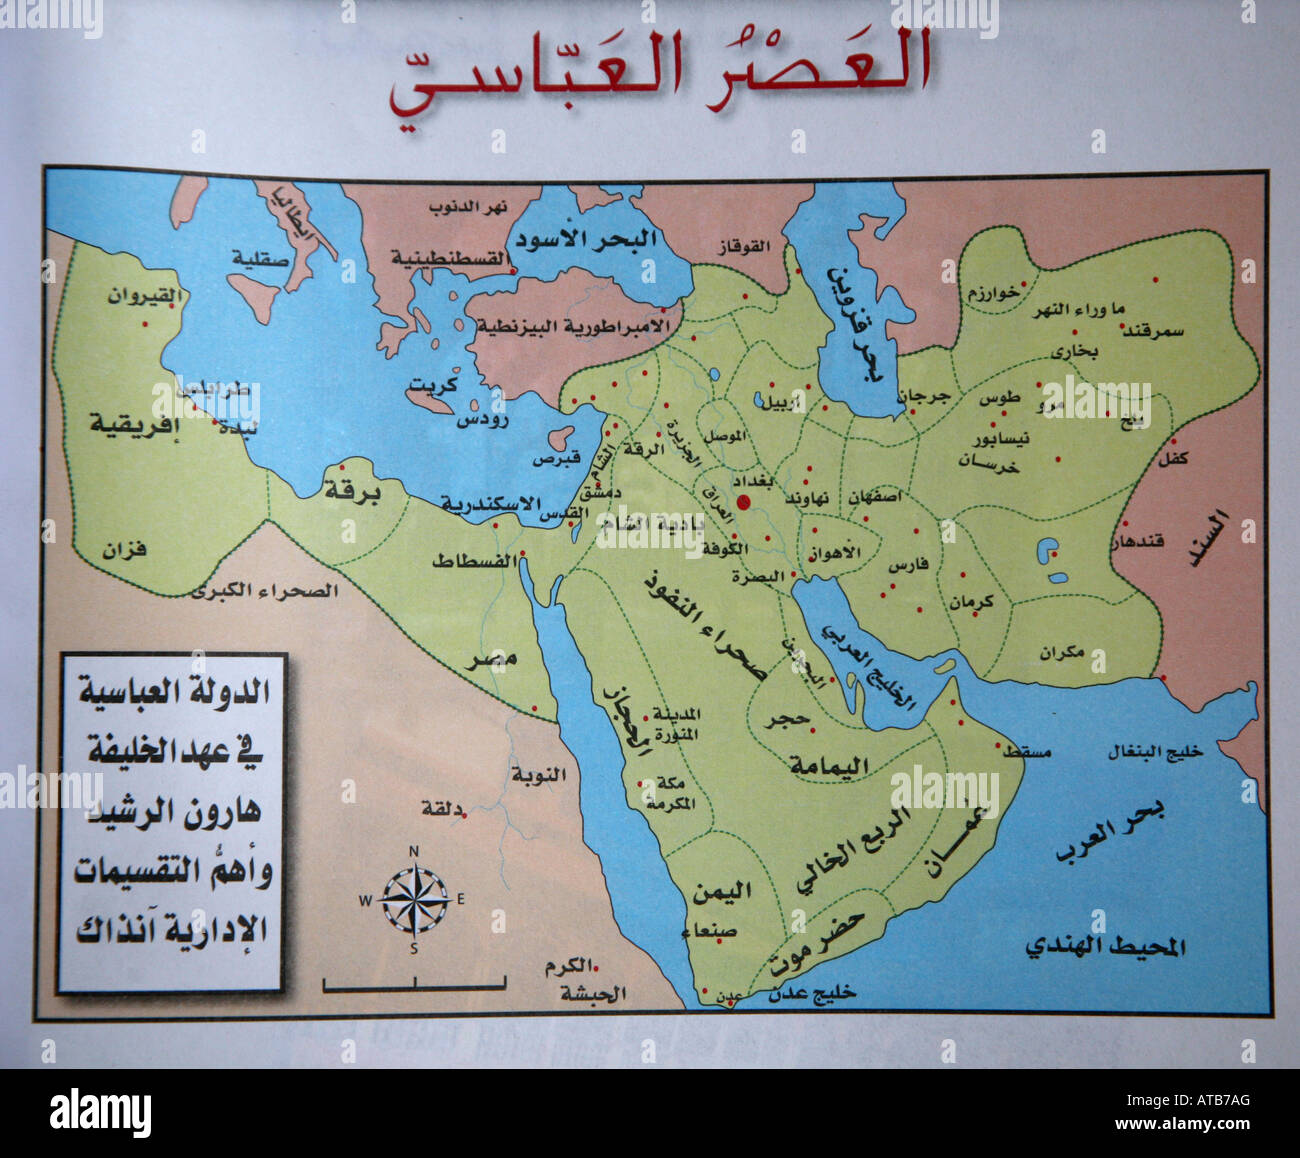 a map of the middle east using arabic script